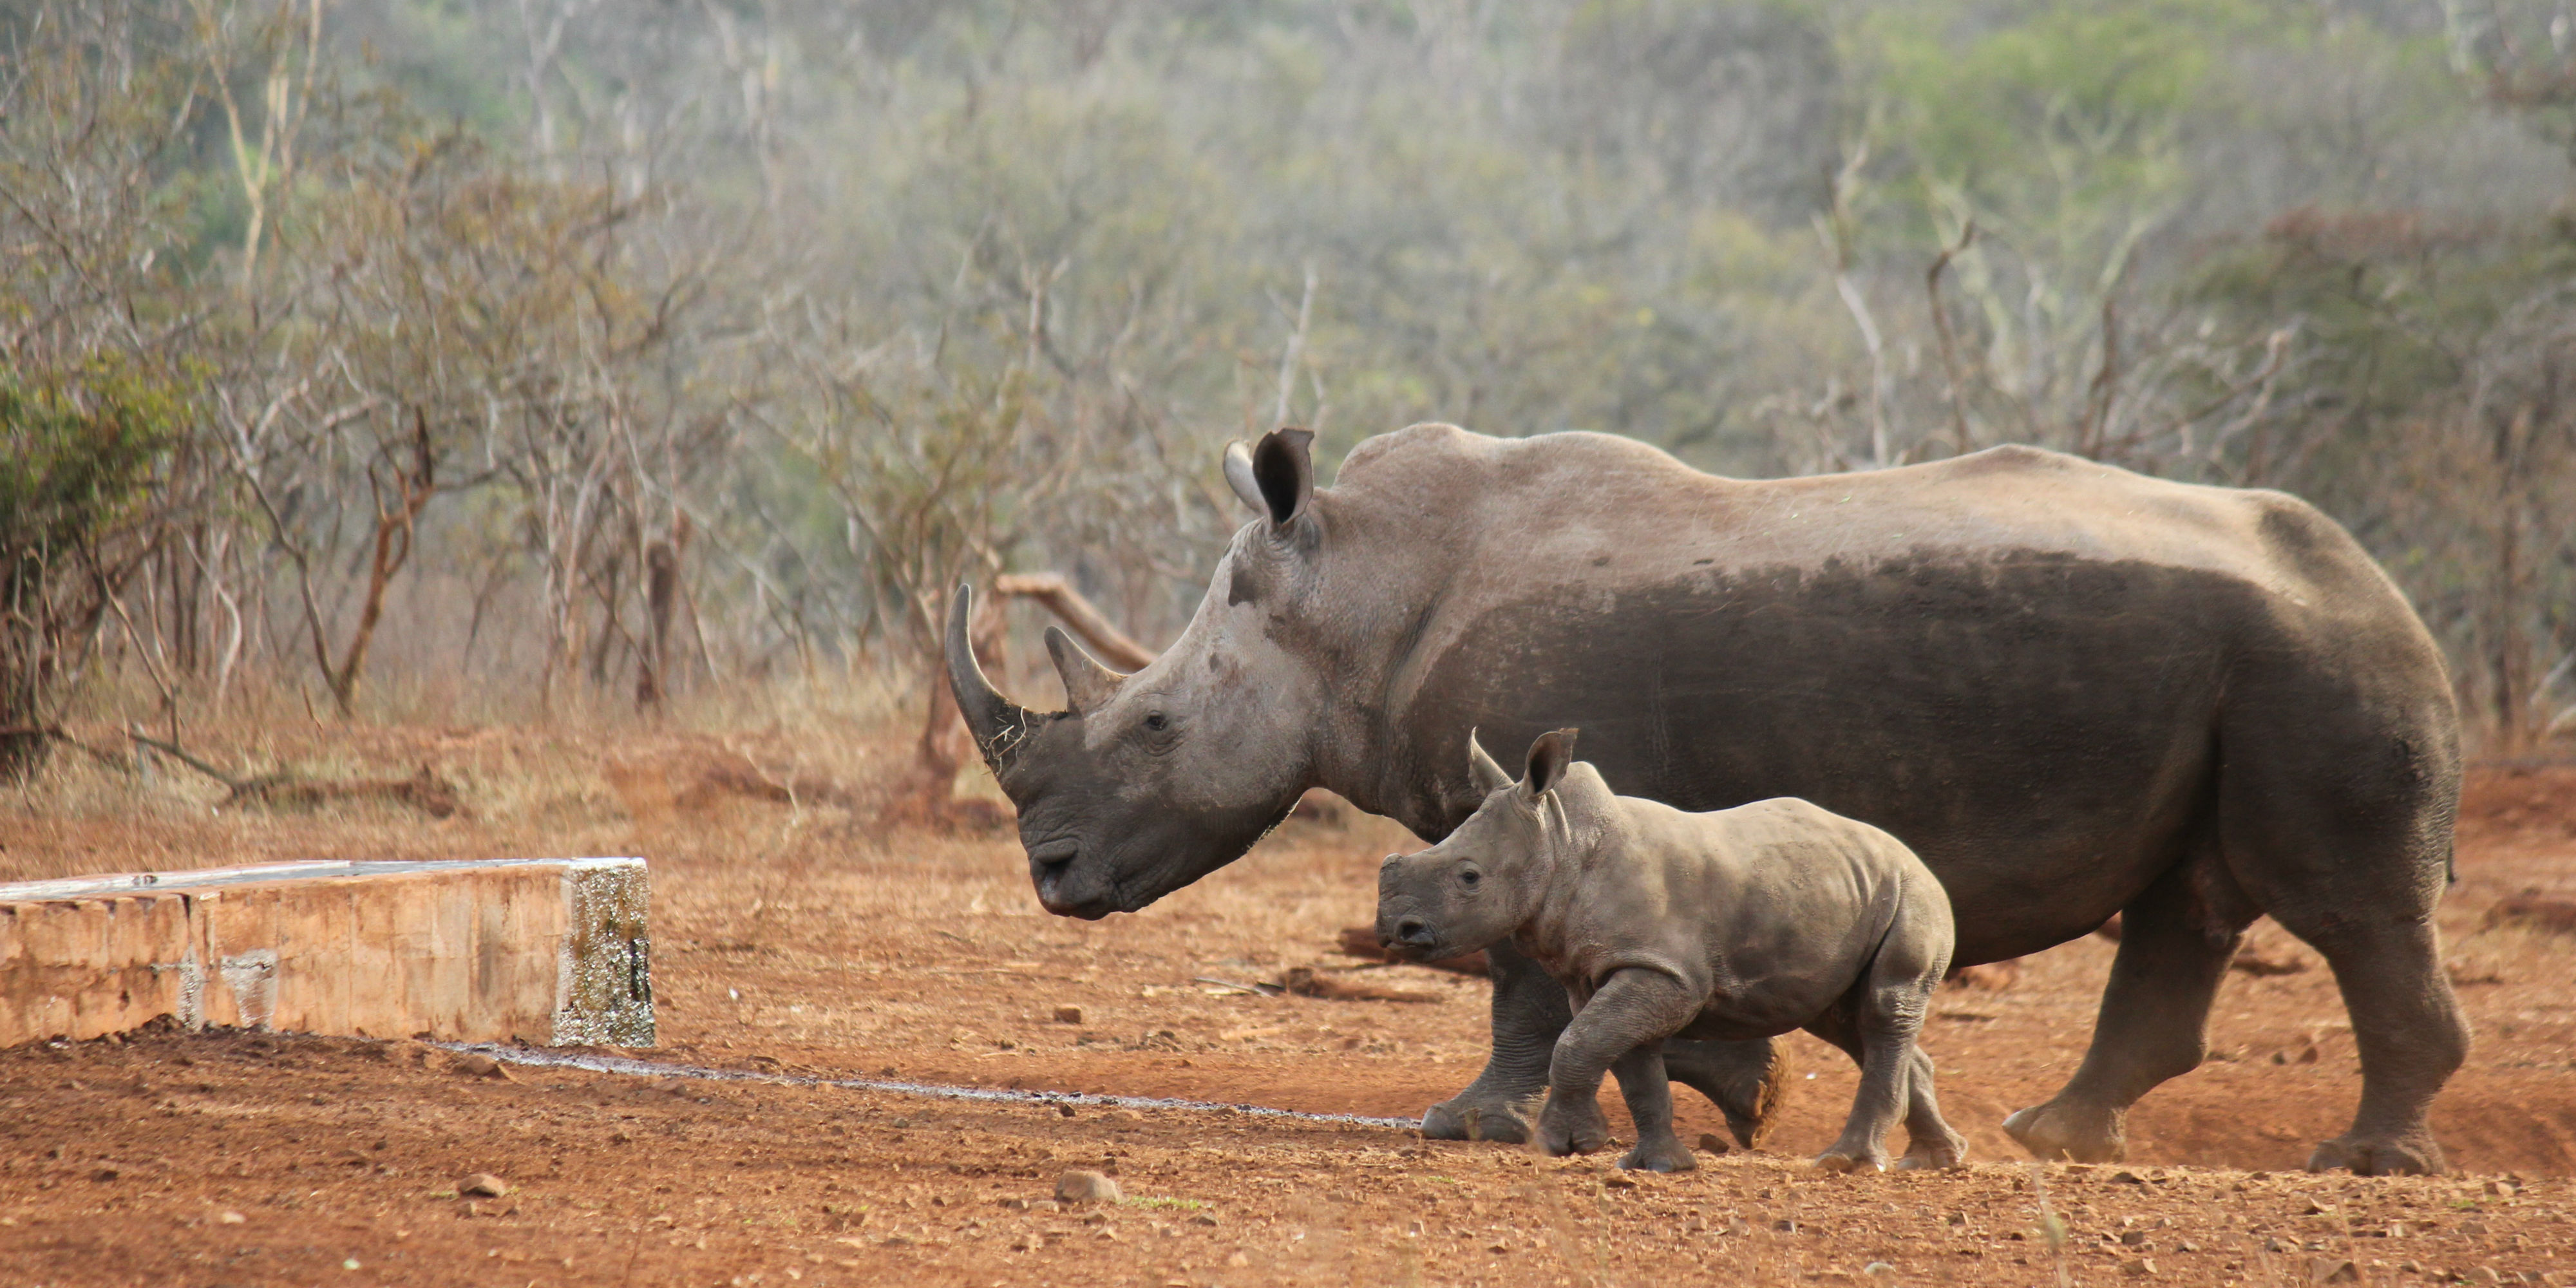 Join a volunteer program towards rhino conservation efforts.